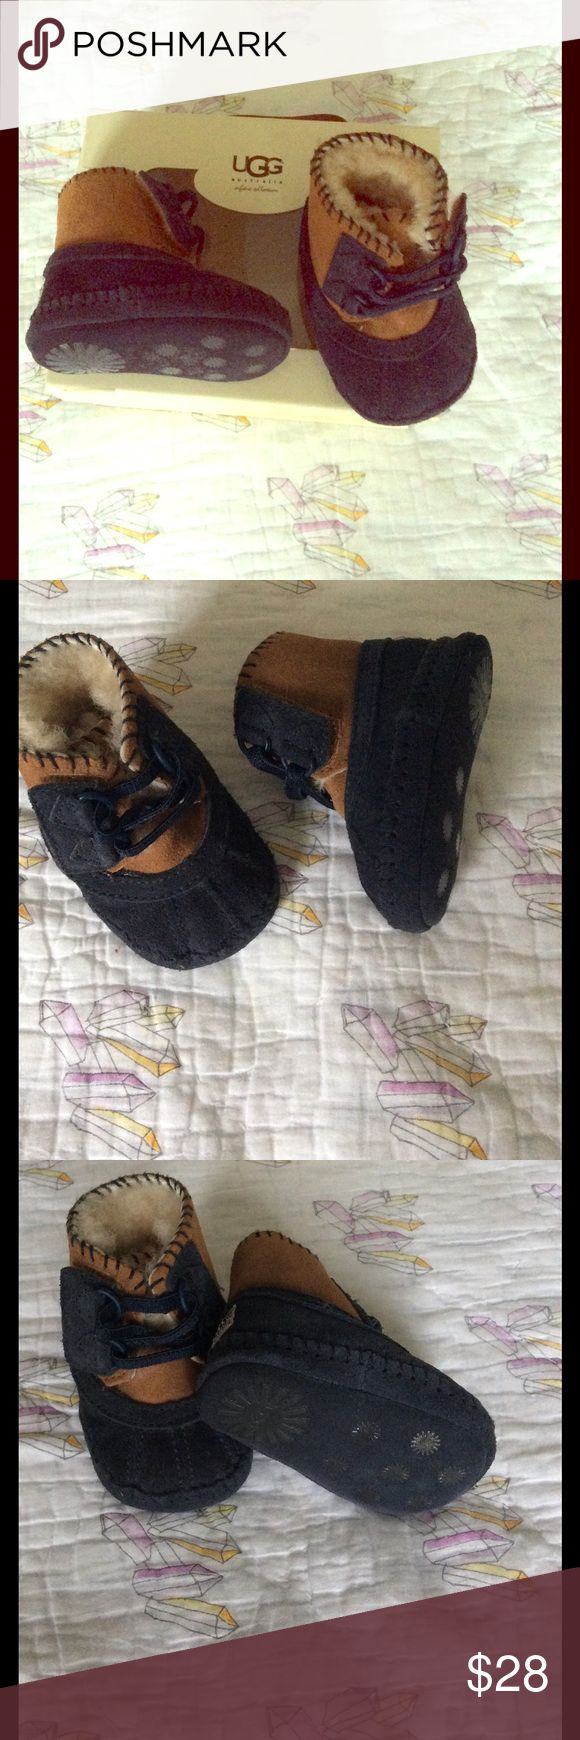 NWT 0-6 Ugg Baby Boots New with box baby Ugg boots, size 0-6 months, in excellent condition, retail was $70 UGG Shoes Boots